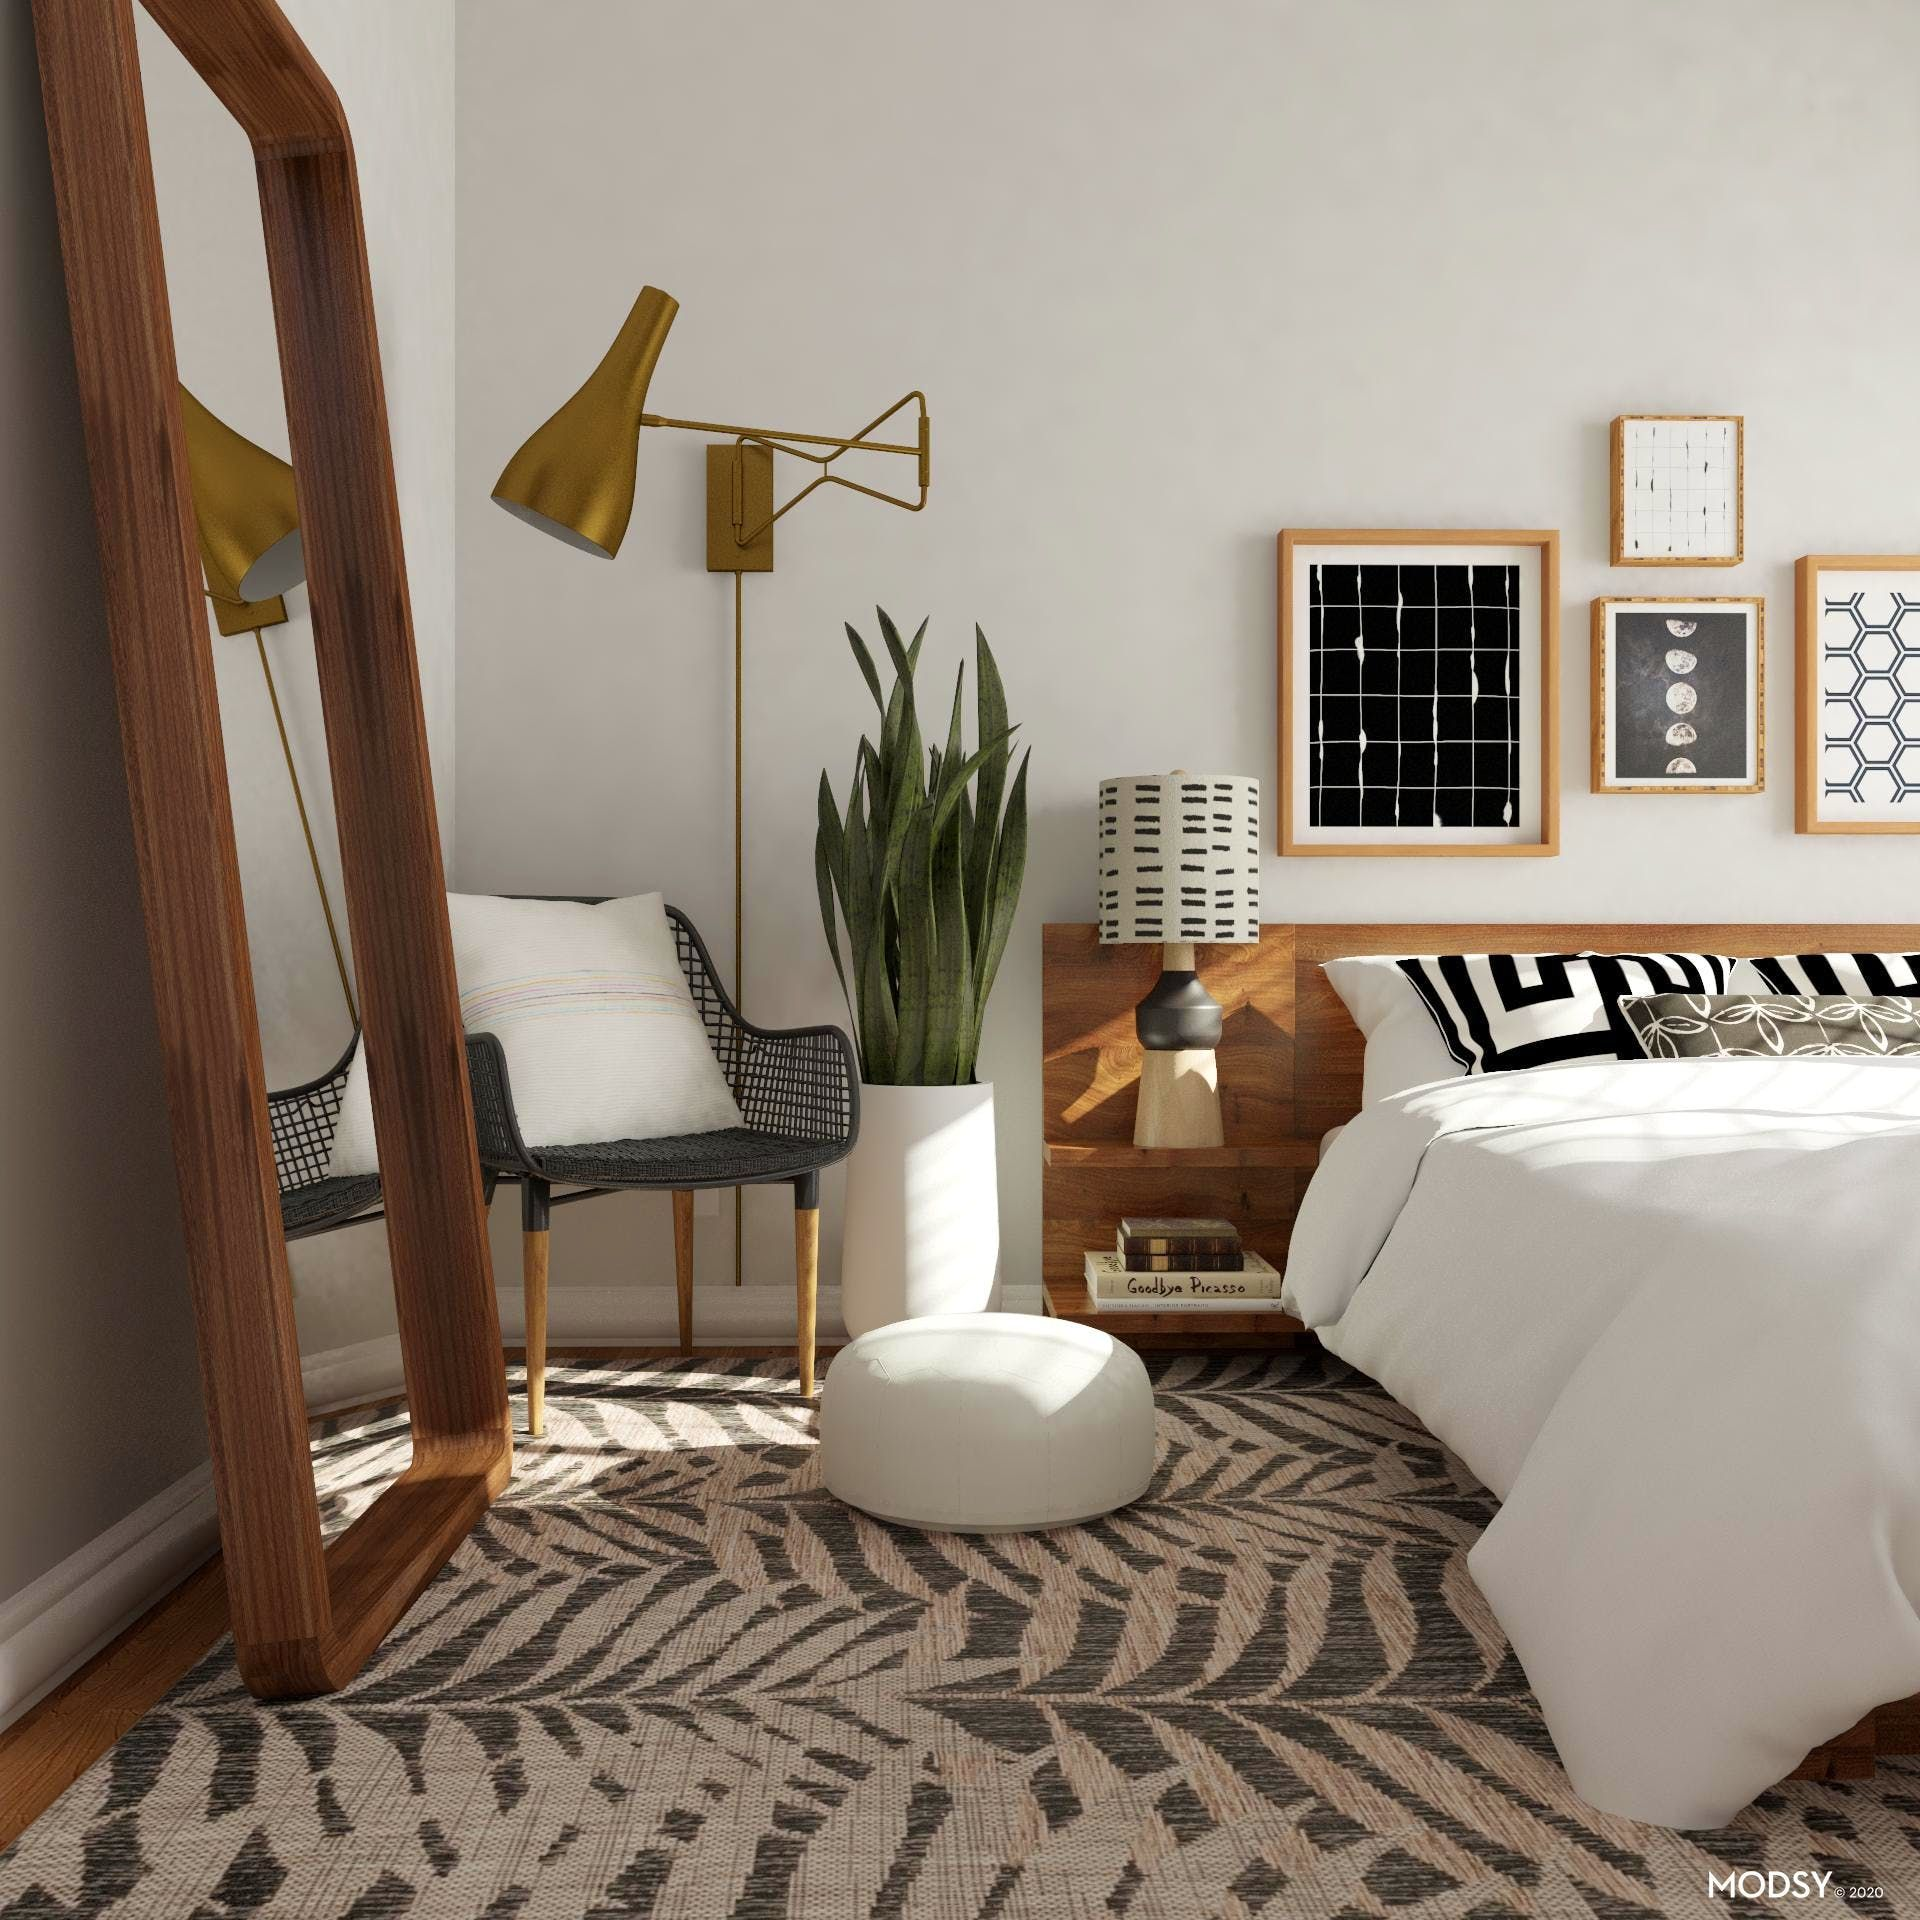 Geomeclectic Bedroom Mid Century Modern Style Bedroom Design Ideas In 2020 Modern Style Bedroom Eclectic Bedroom Design Eclectic Bedroom